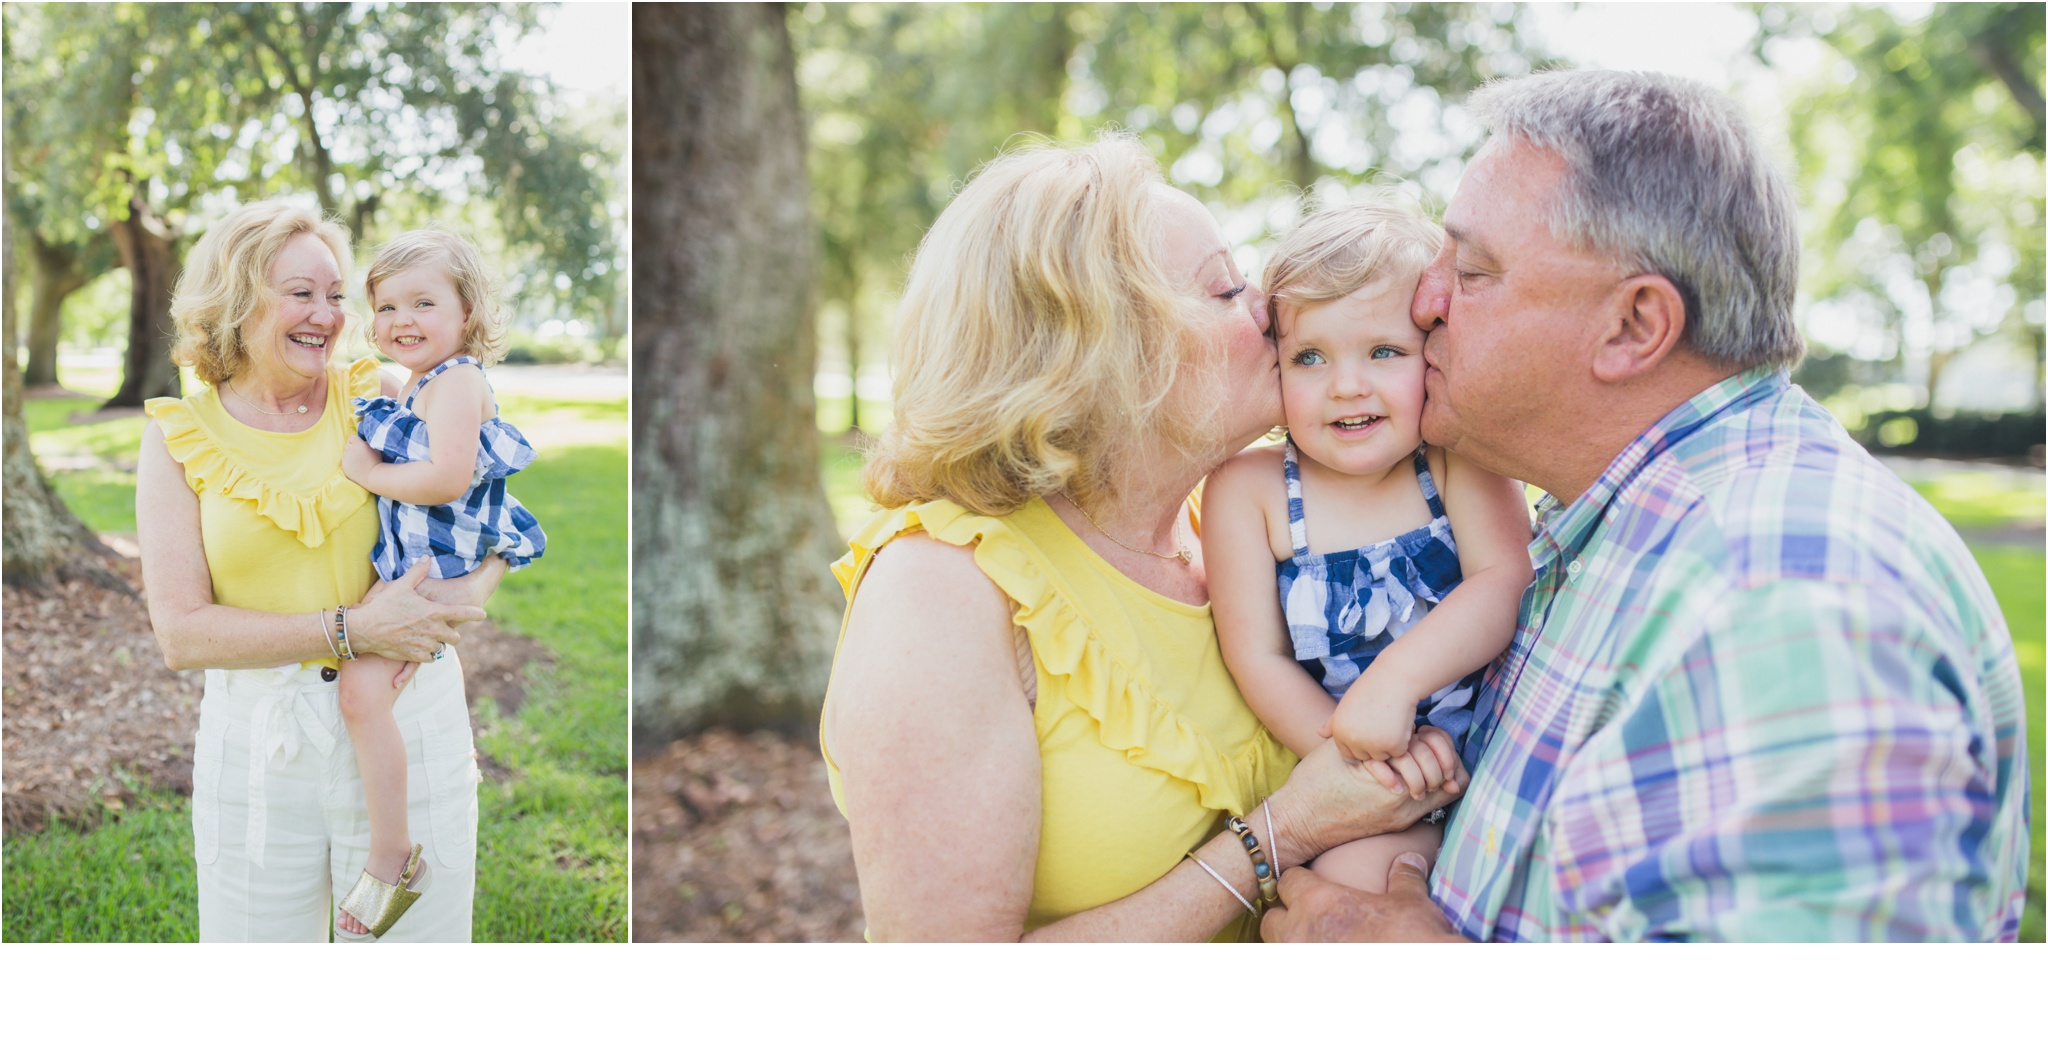 Rainey_Gregg_Photography_St._Simons_Island_Georgia_California_Wedding_Portrait_Photography_1427.jpg